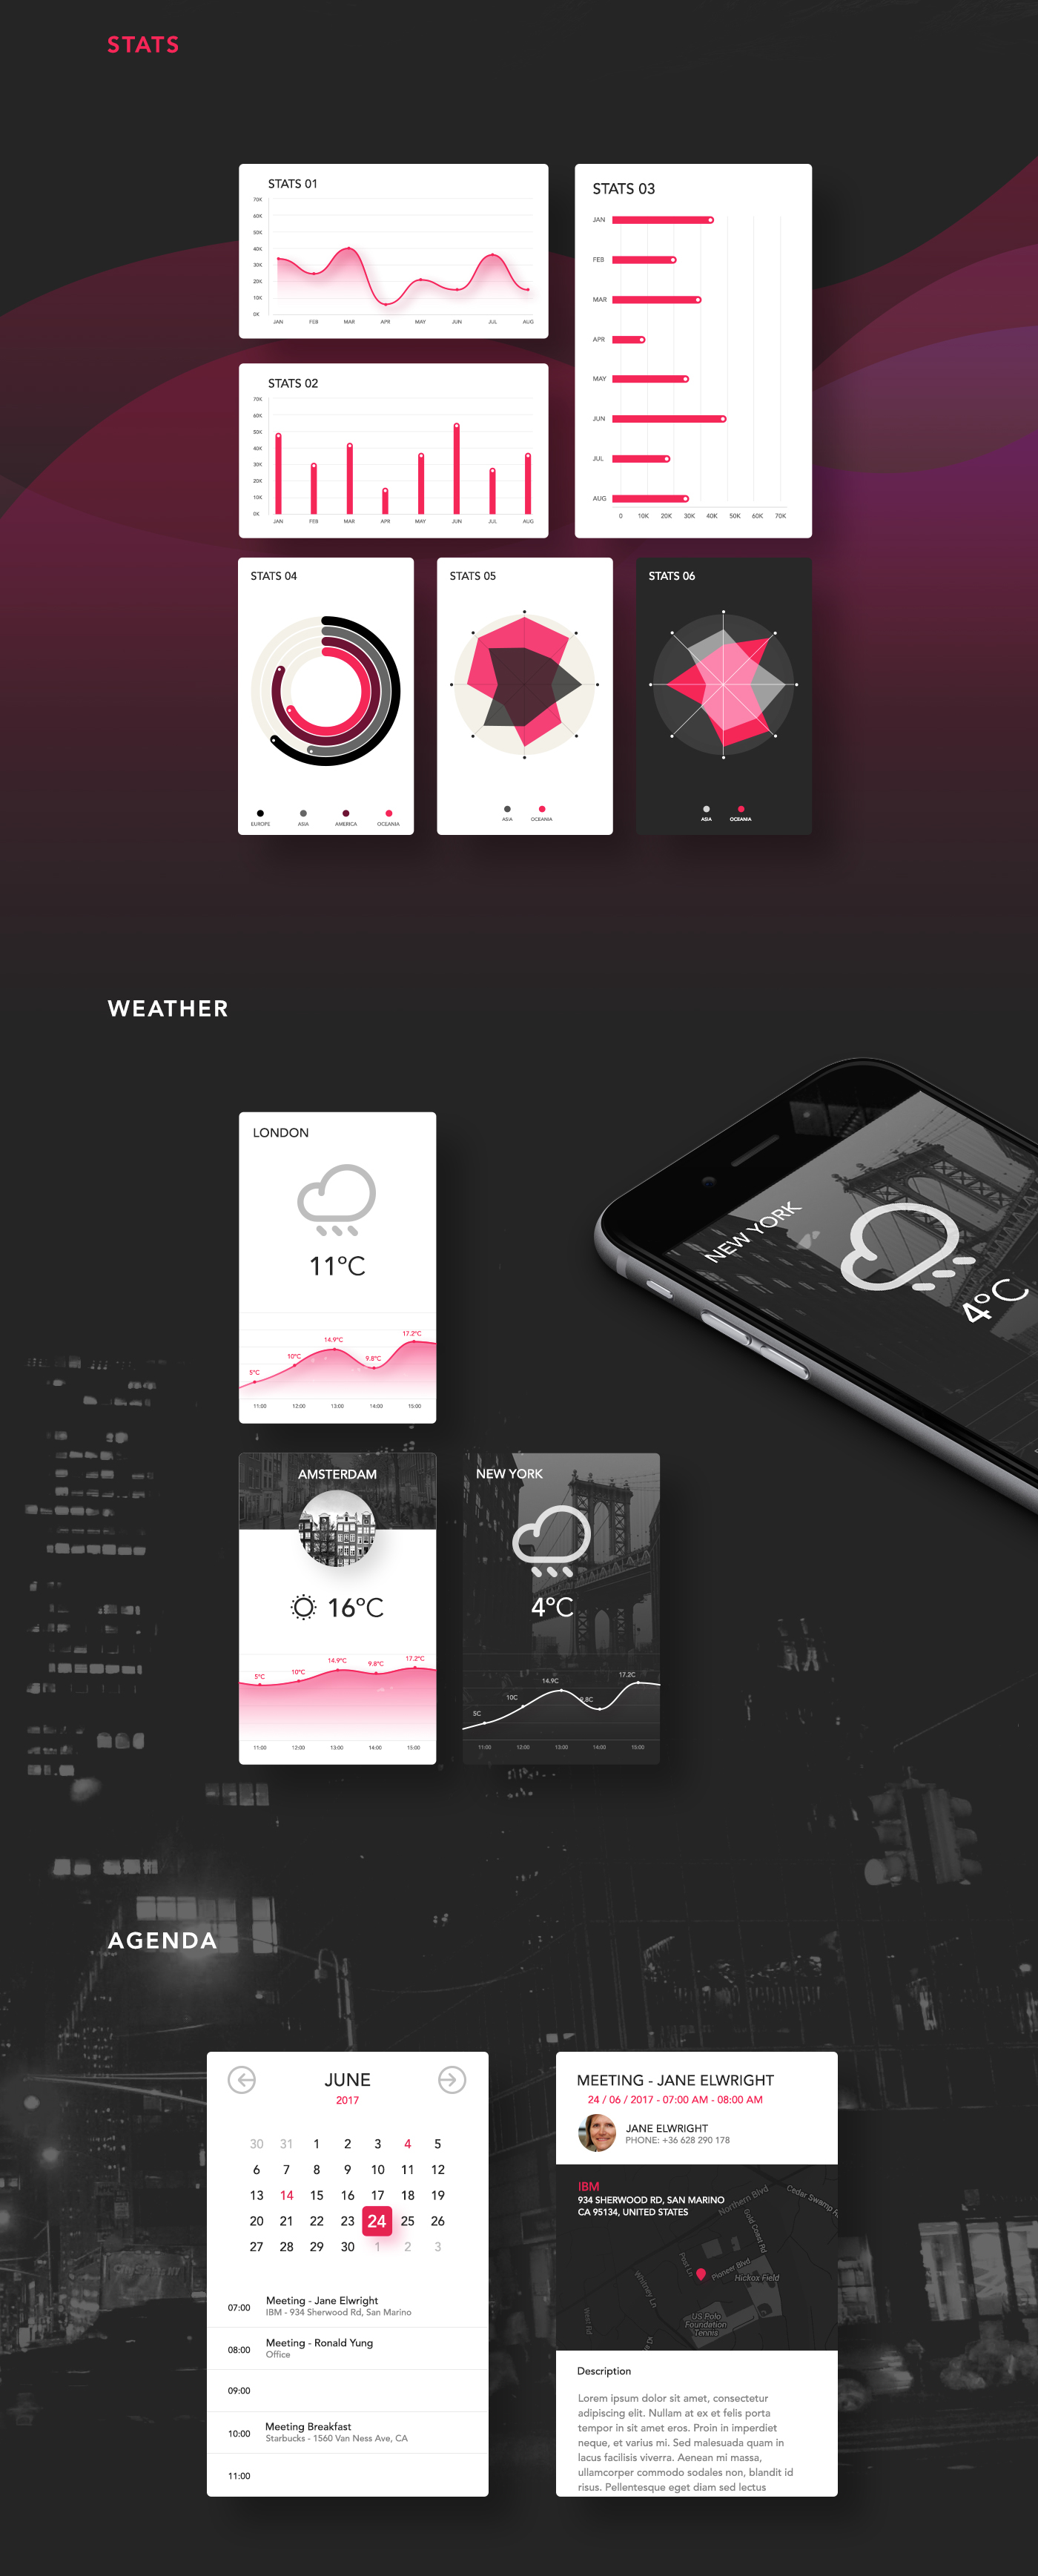 Aerea Dark Free UI Kit Stats and Weather PSD